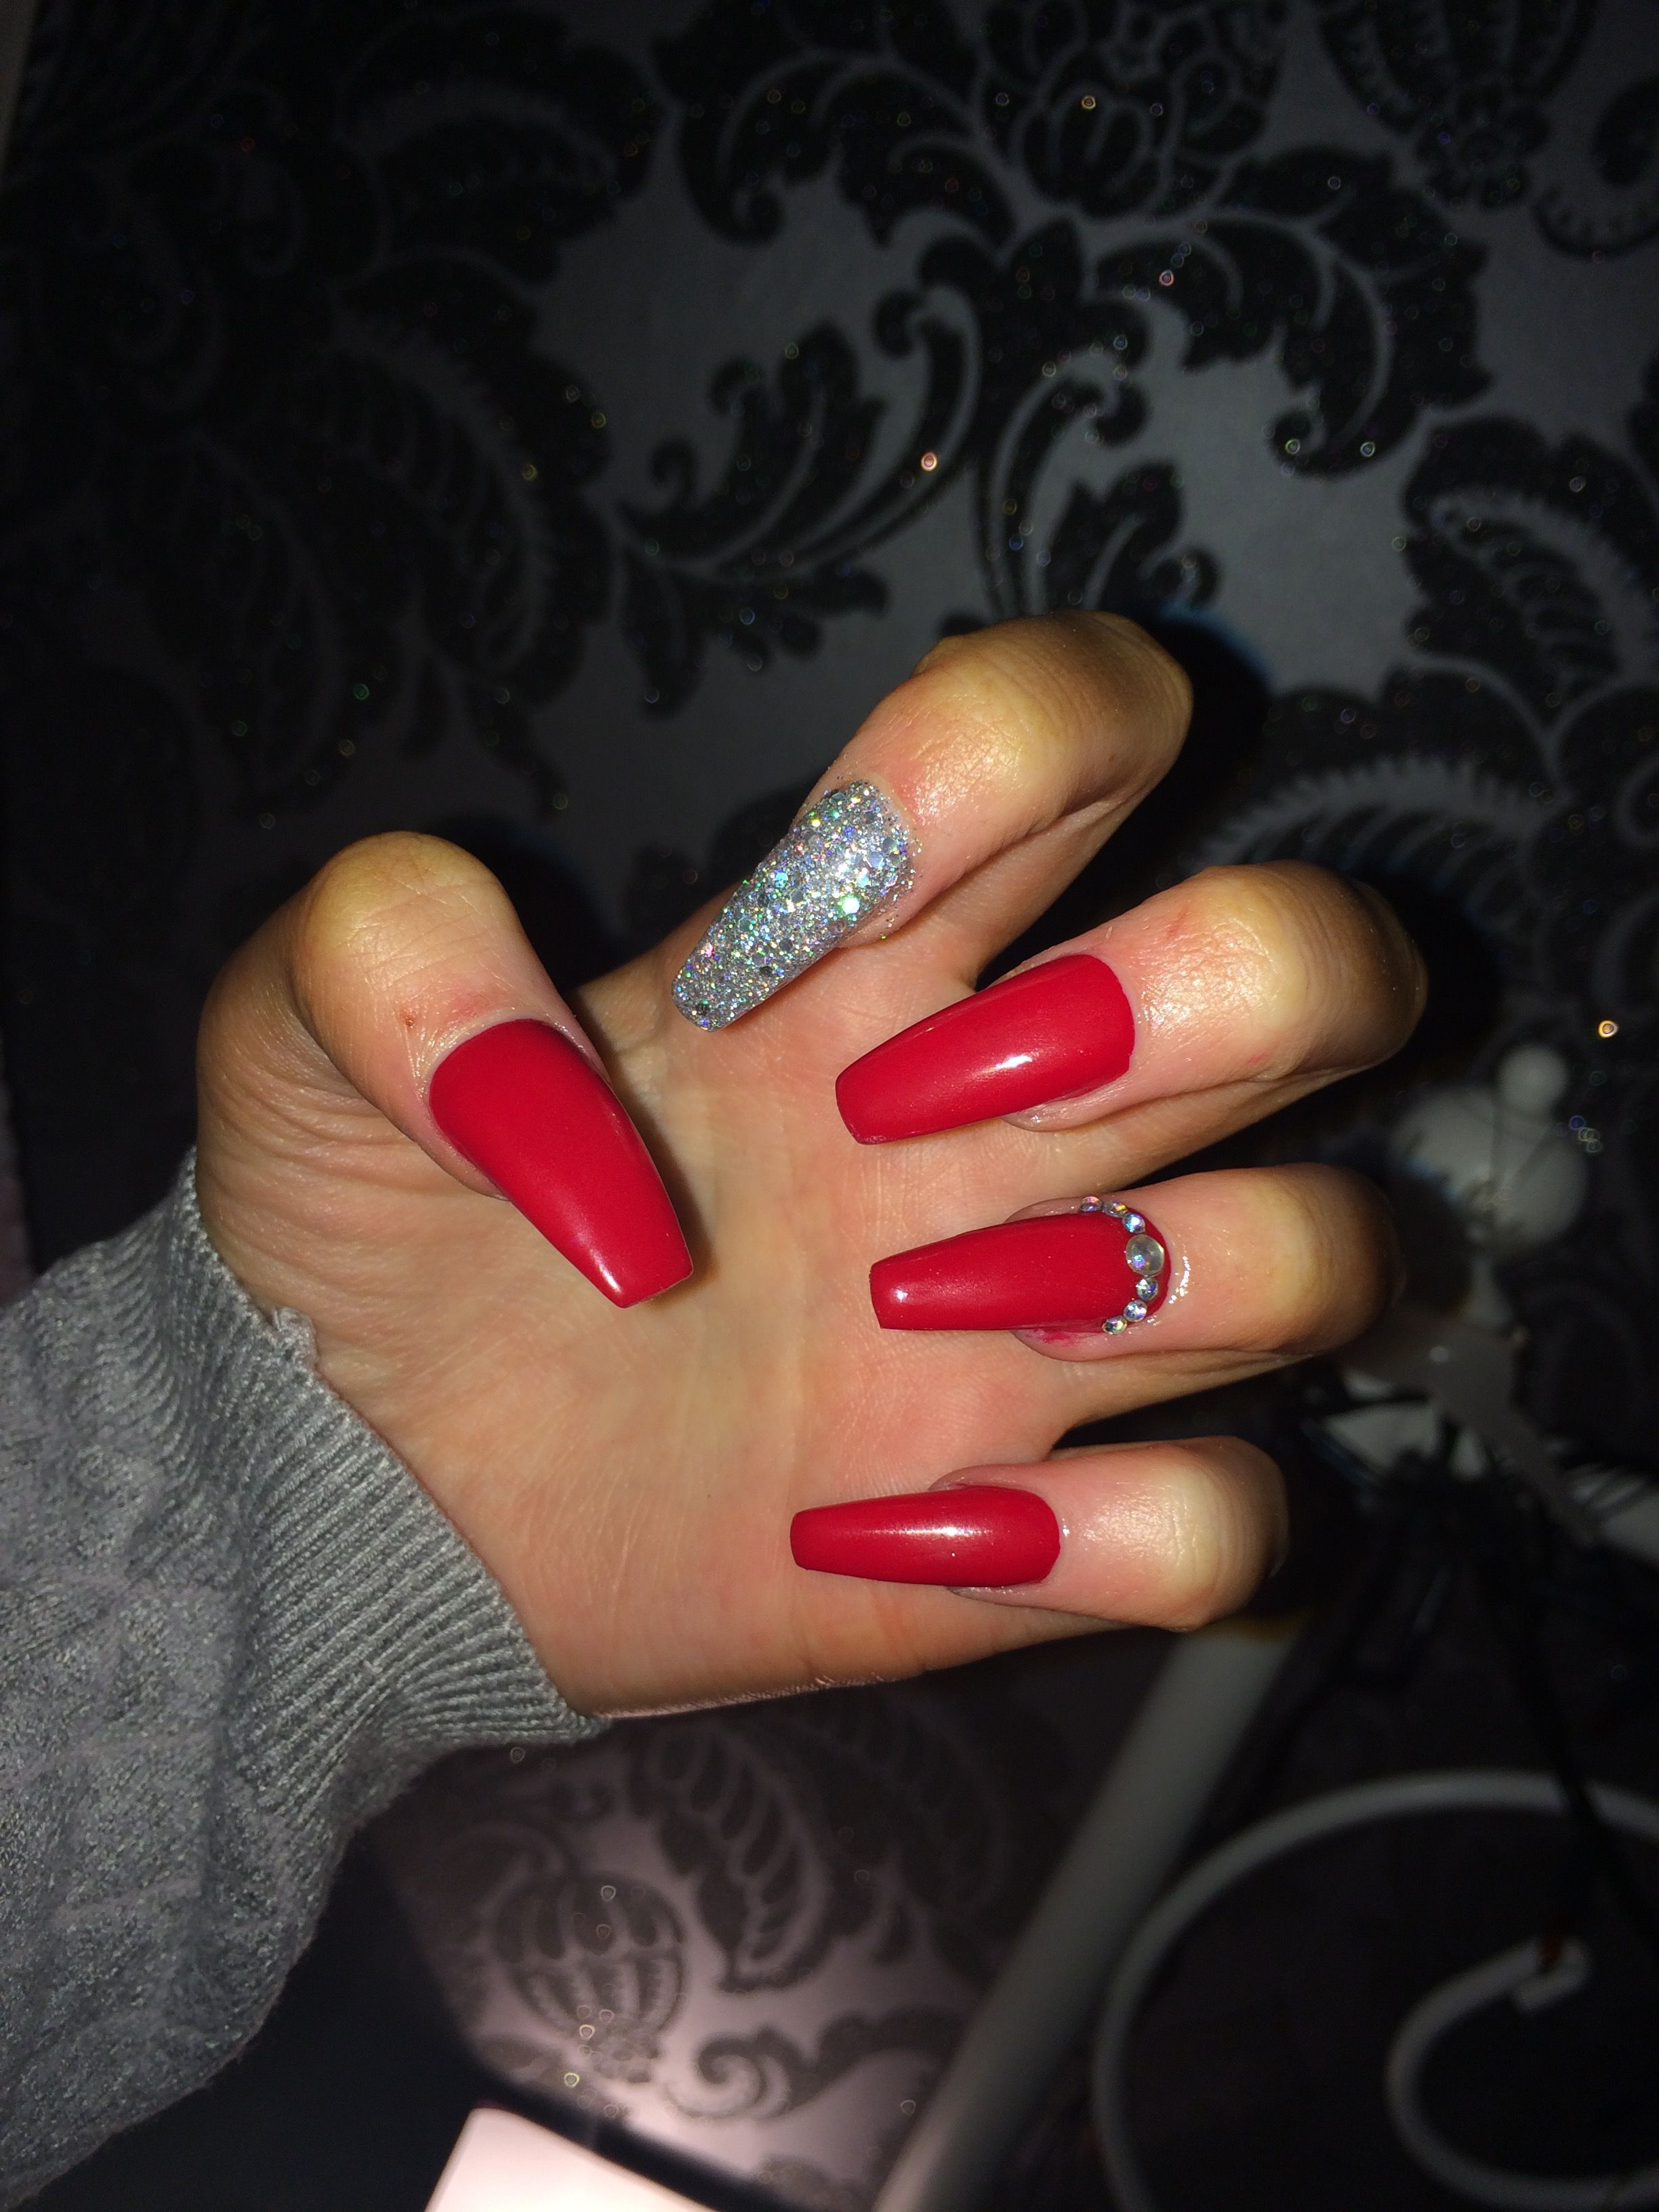 Christmassy Acrylicnails Red Red Acrylic Nails Red Nails Glitter Silver Acrylic Nails